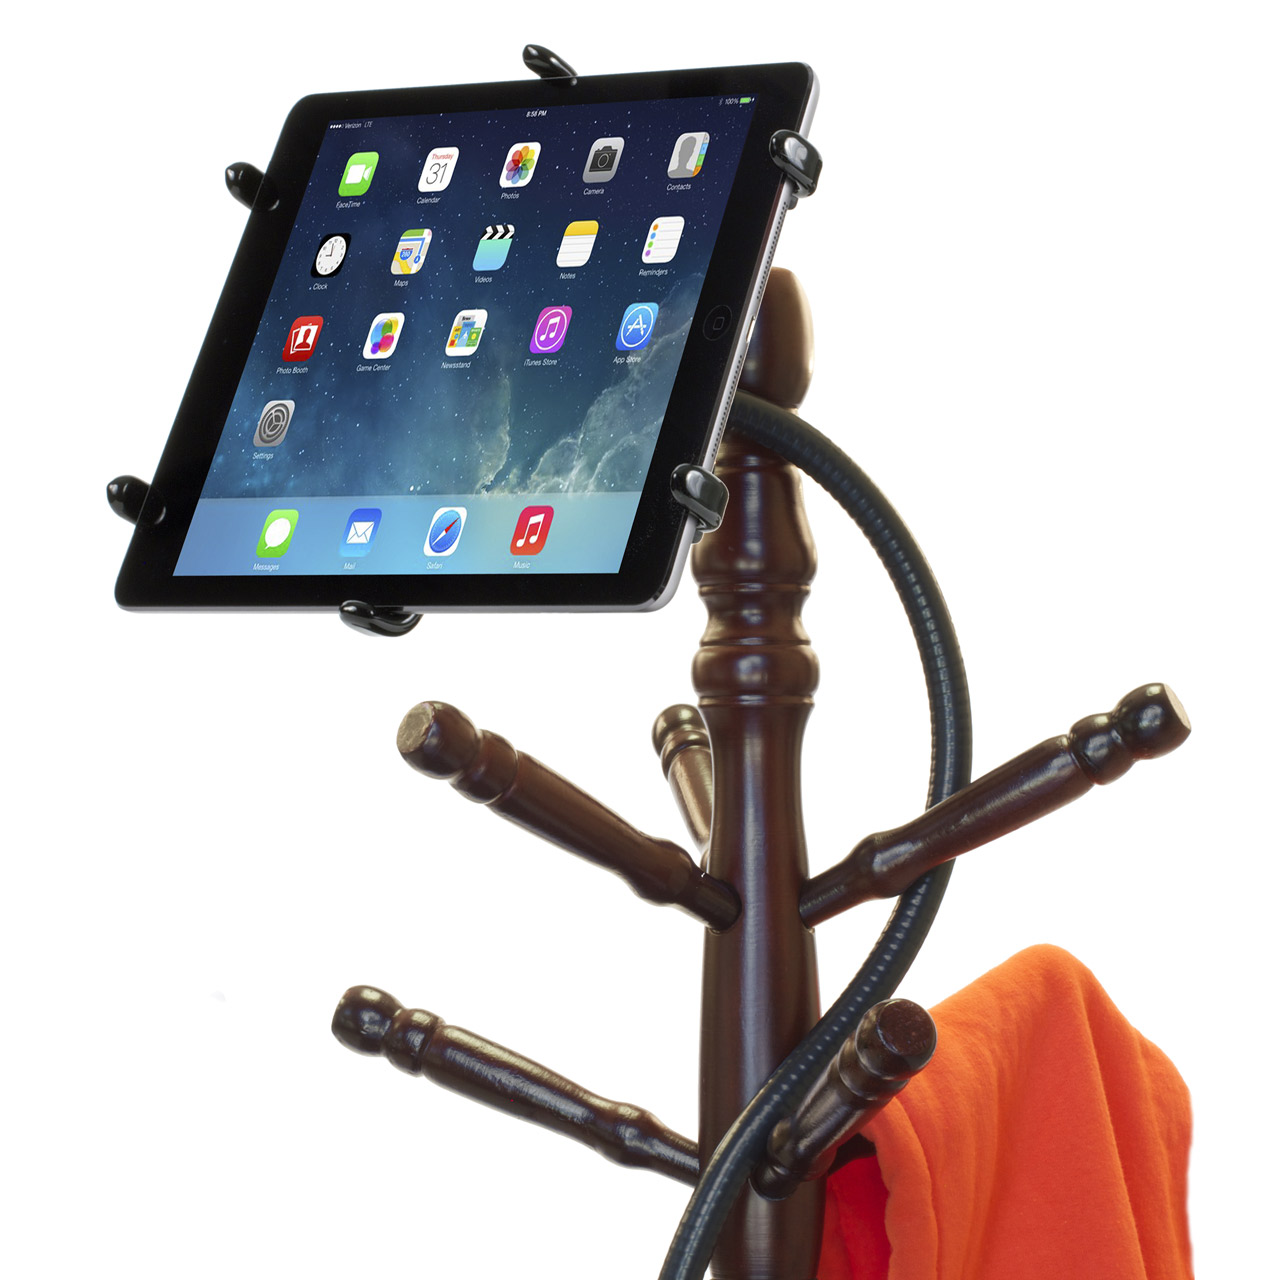 PED4-Coil IPA10 iPad Stand Flexible Gooseneck & Pivoting Holder